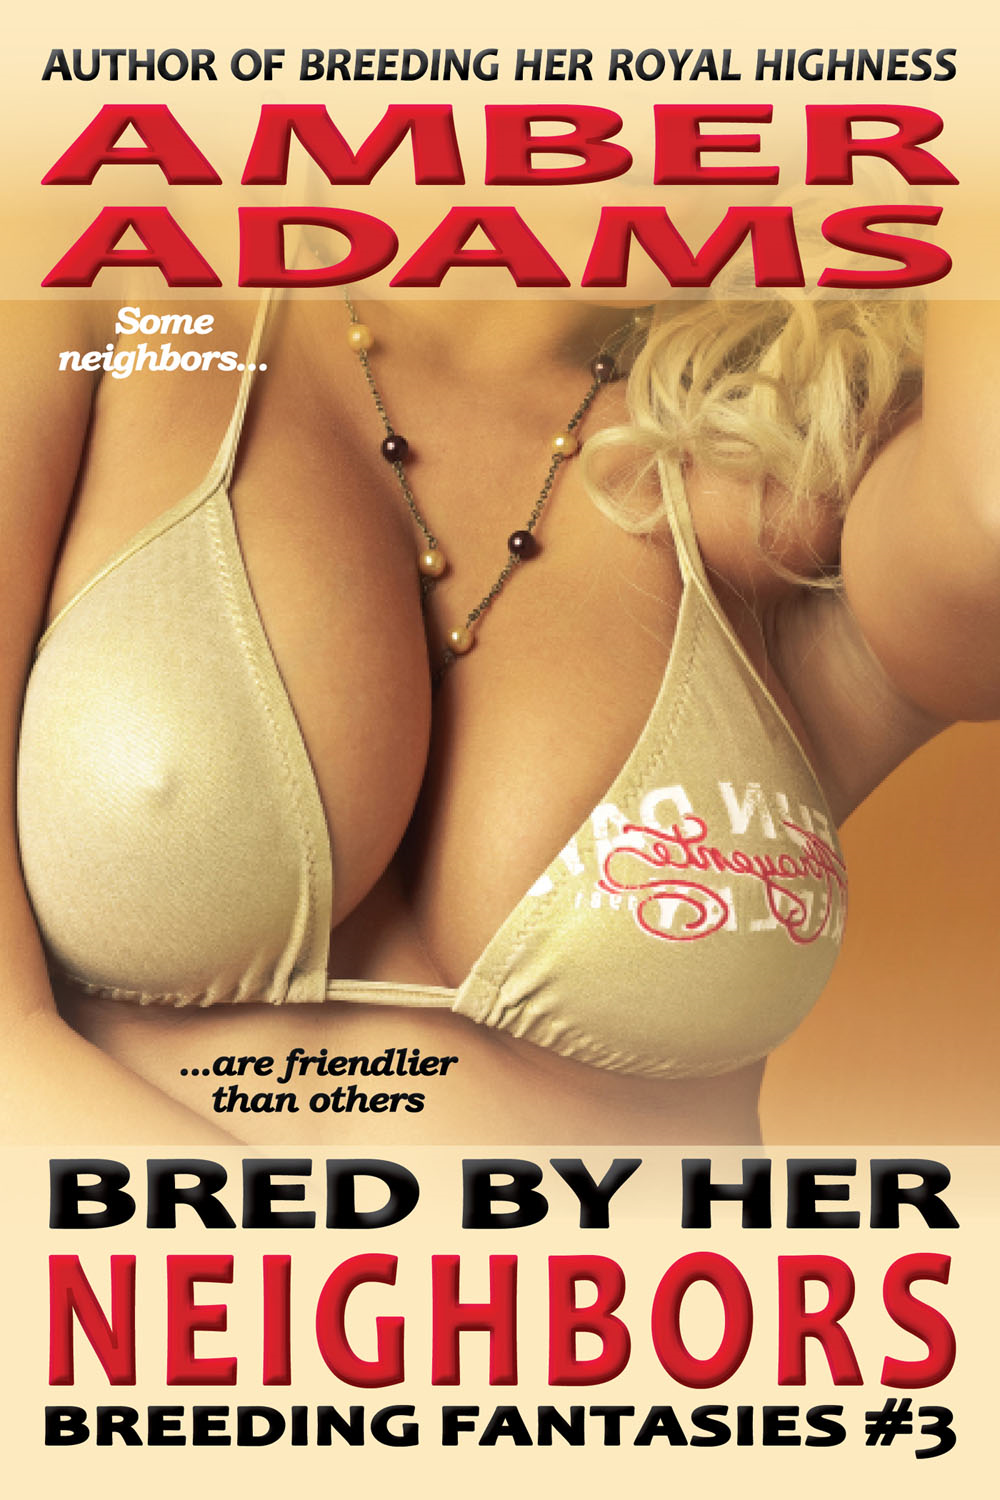 Amber Adams - Bred By Her Neighbors